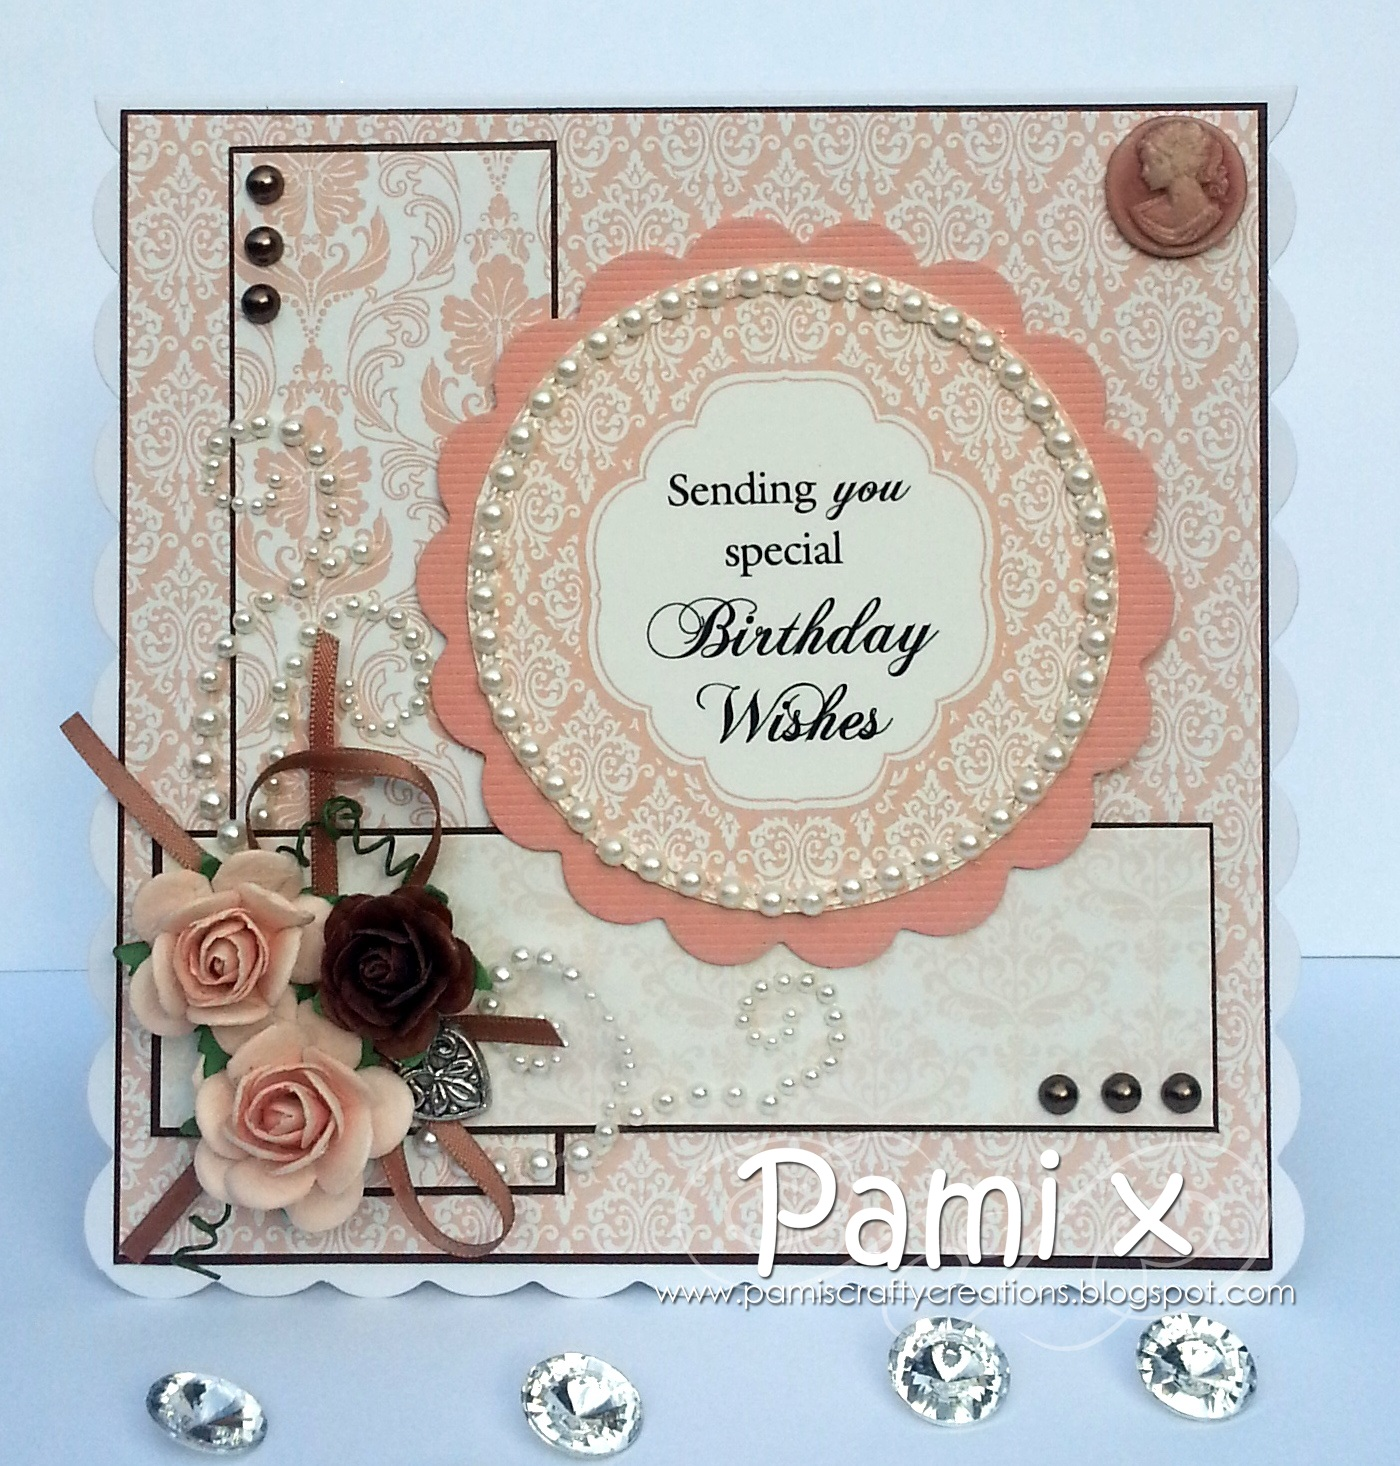 String Regal Tv Pami's Crafty Creations: Vintage Hobby House